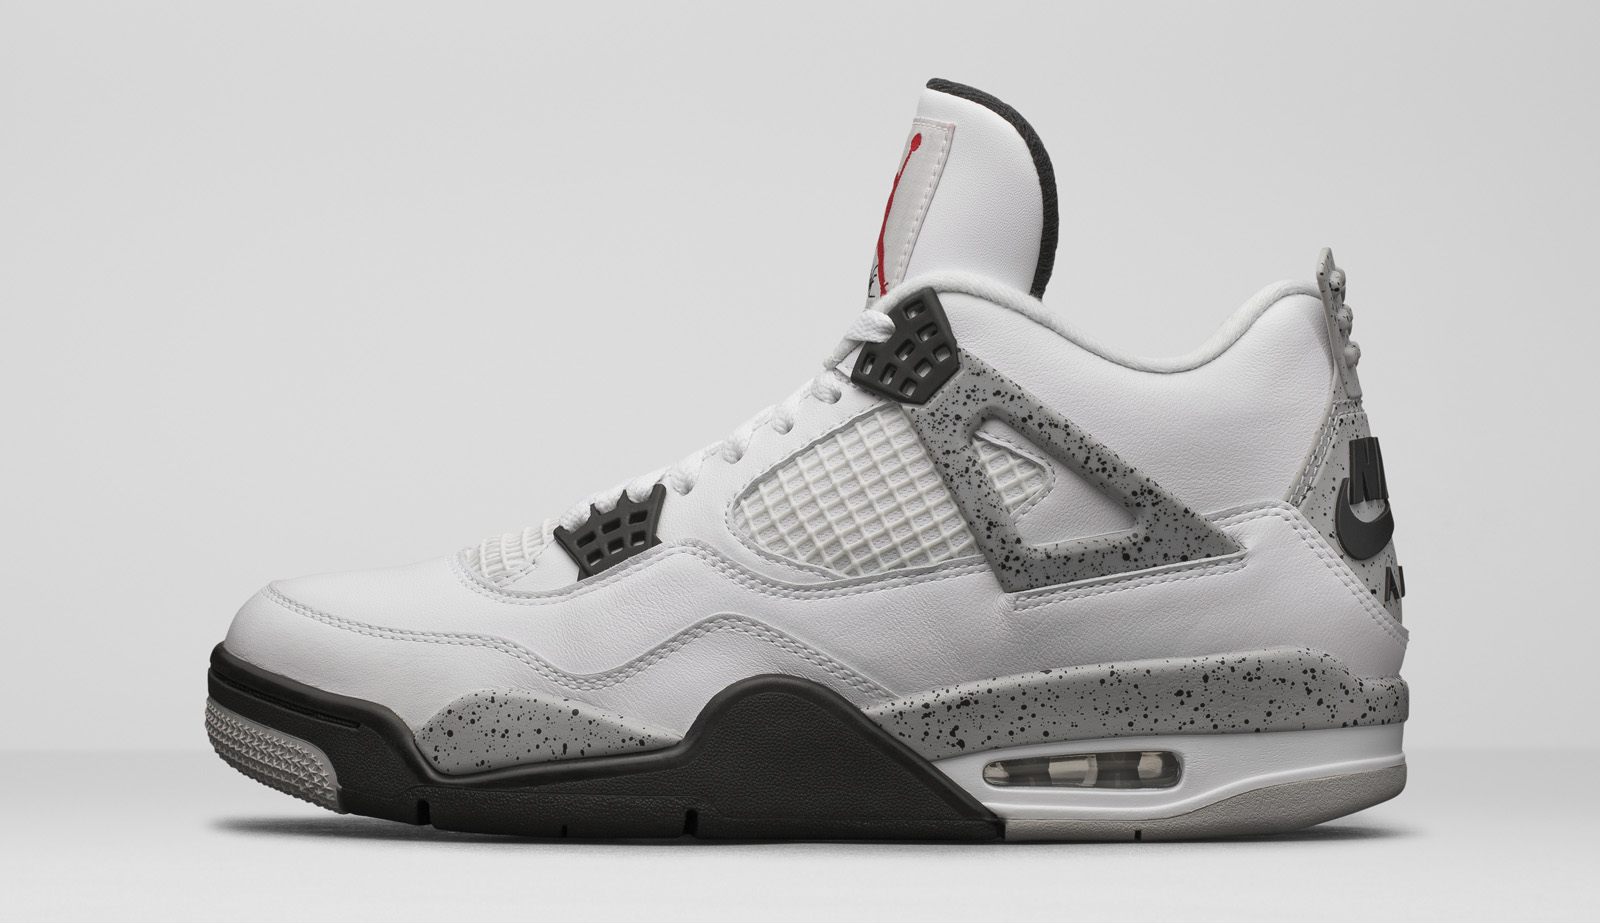 lowest price ee503 b225d Nike Air Jordan 4 'White Cement' Retro 2016